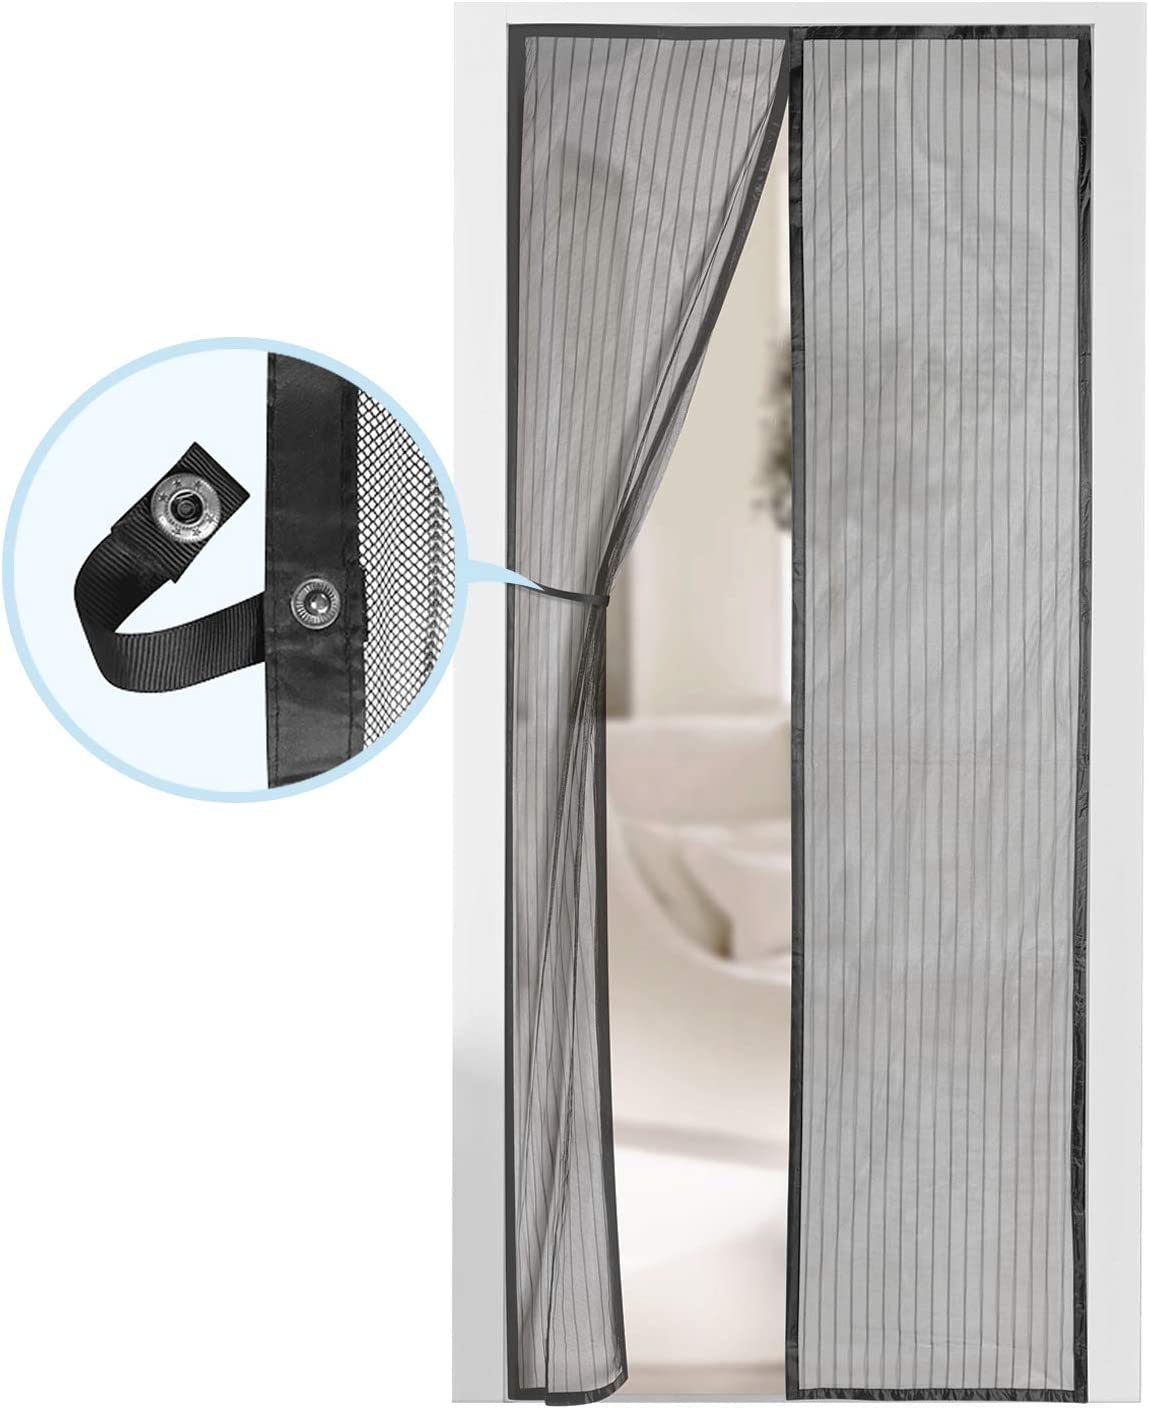 "Magnetic Screen Door - Self Sealing, Heavy Duty, Hands Free Mesh Partition Keeps Bugs Out - Pet and Kid Friendly - Patent Pending Keep Open Feature - 38"" x 83"" - by Augo - -"